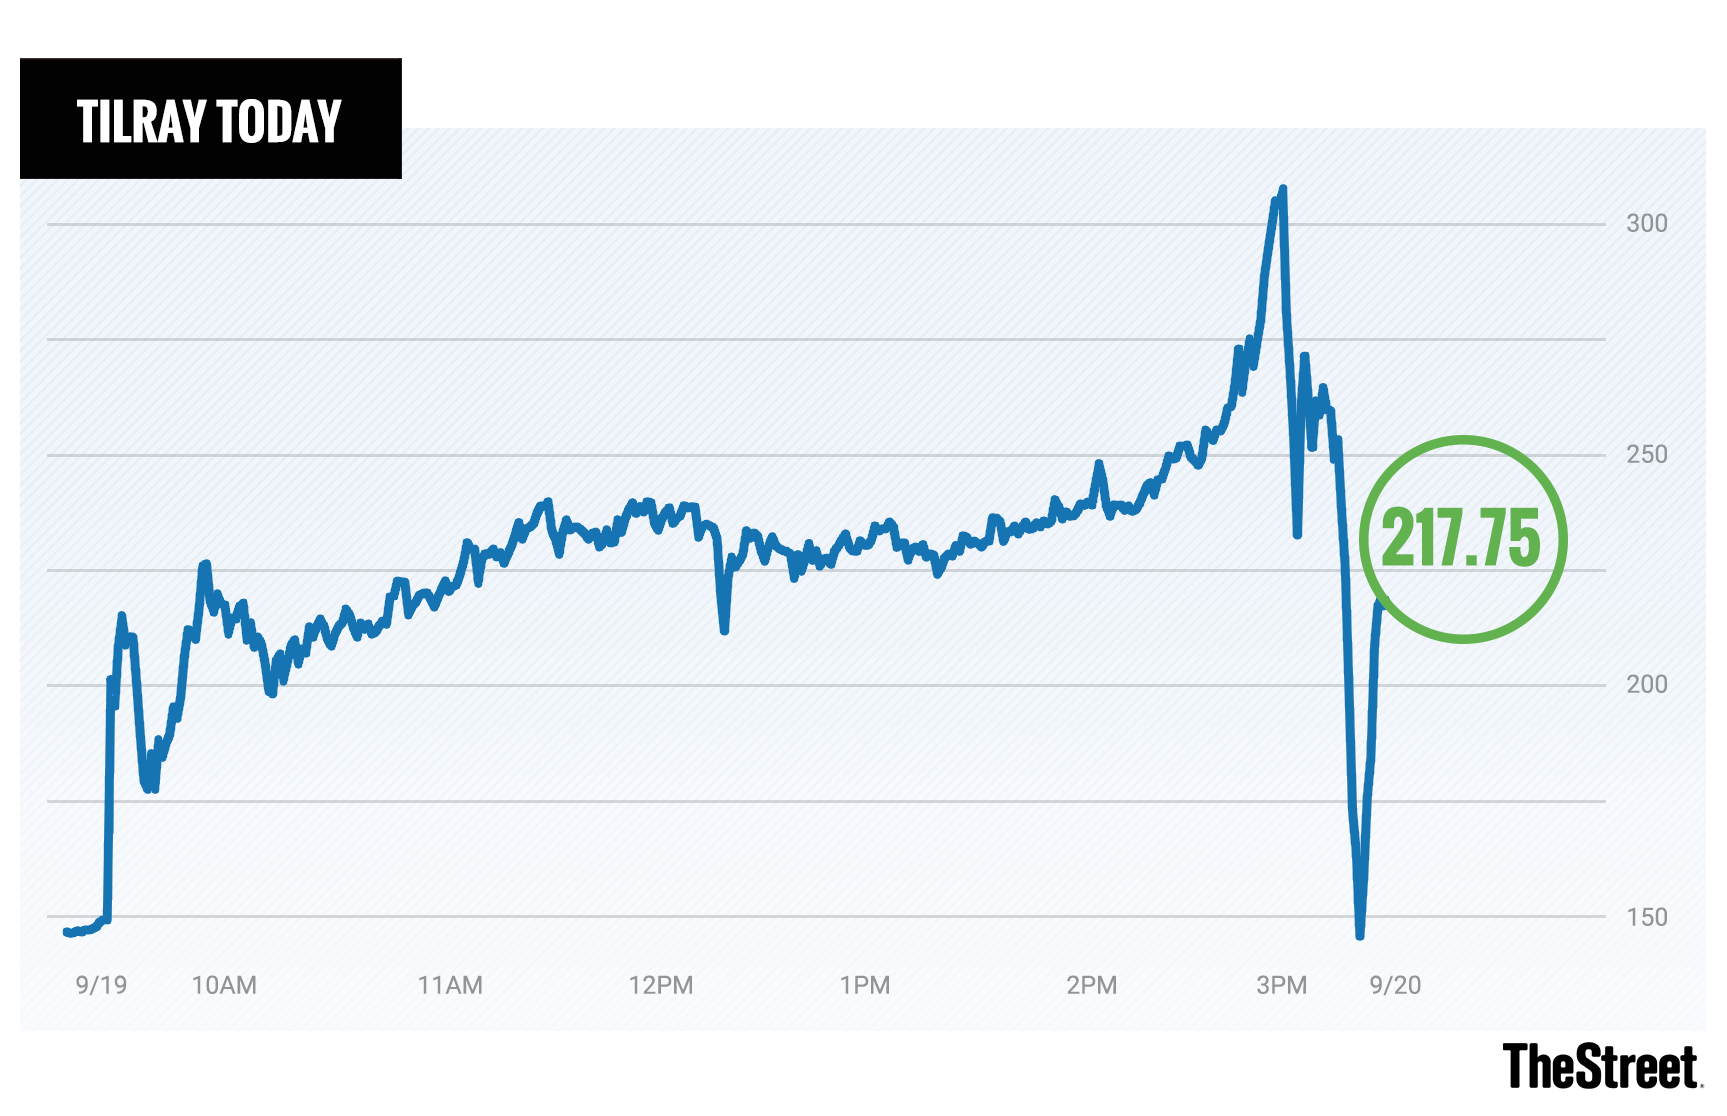 A Chart Showing Shares Of Tilray Throughout The Day On Wednesday